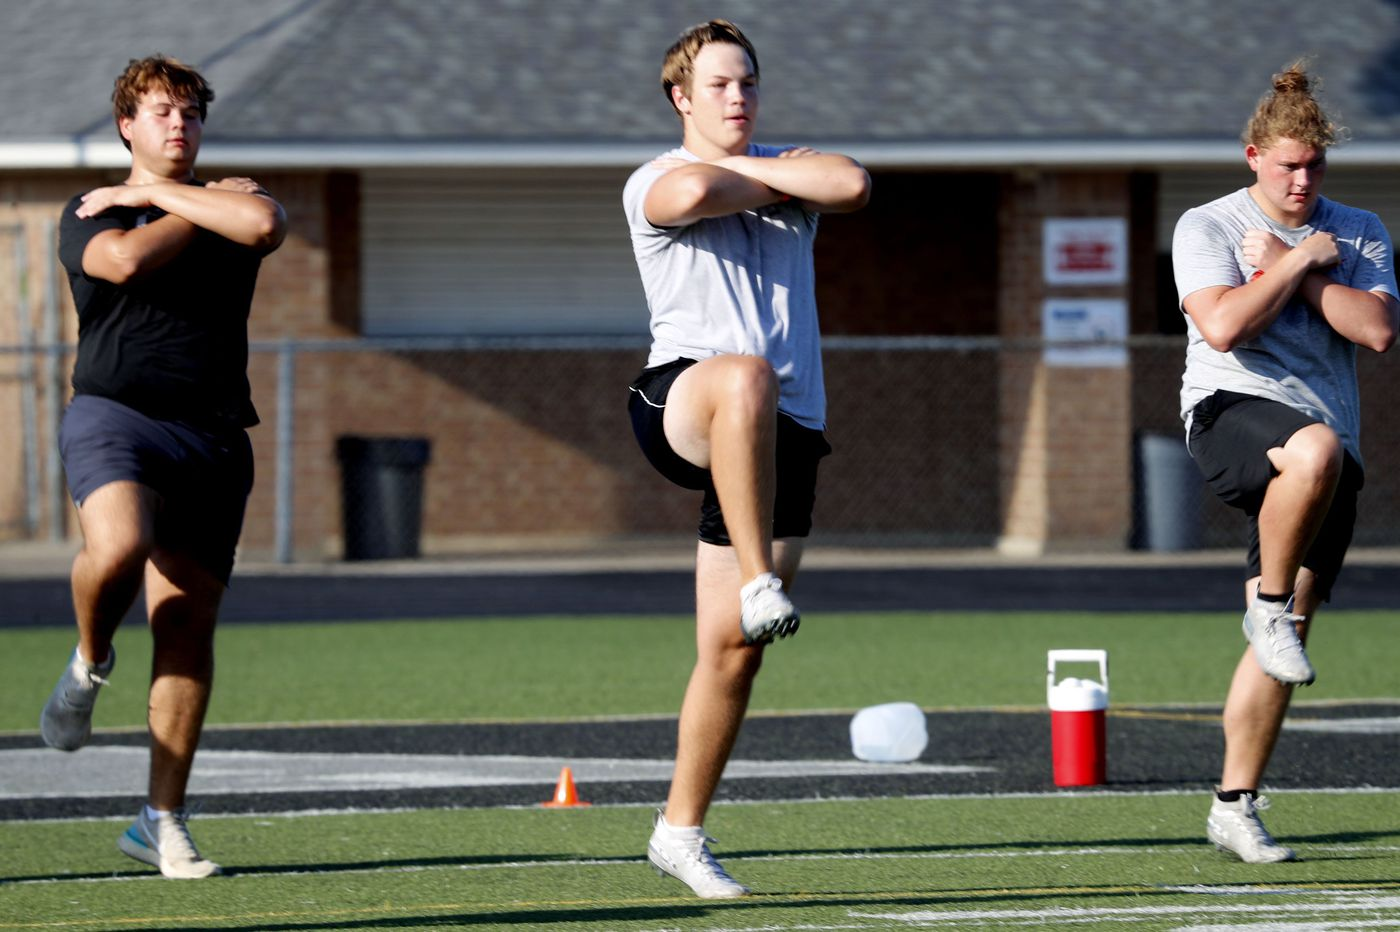 How young athletes can maintain conditioning with fall sports postponed | Expert Opinion